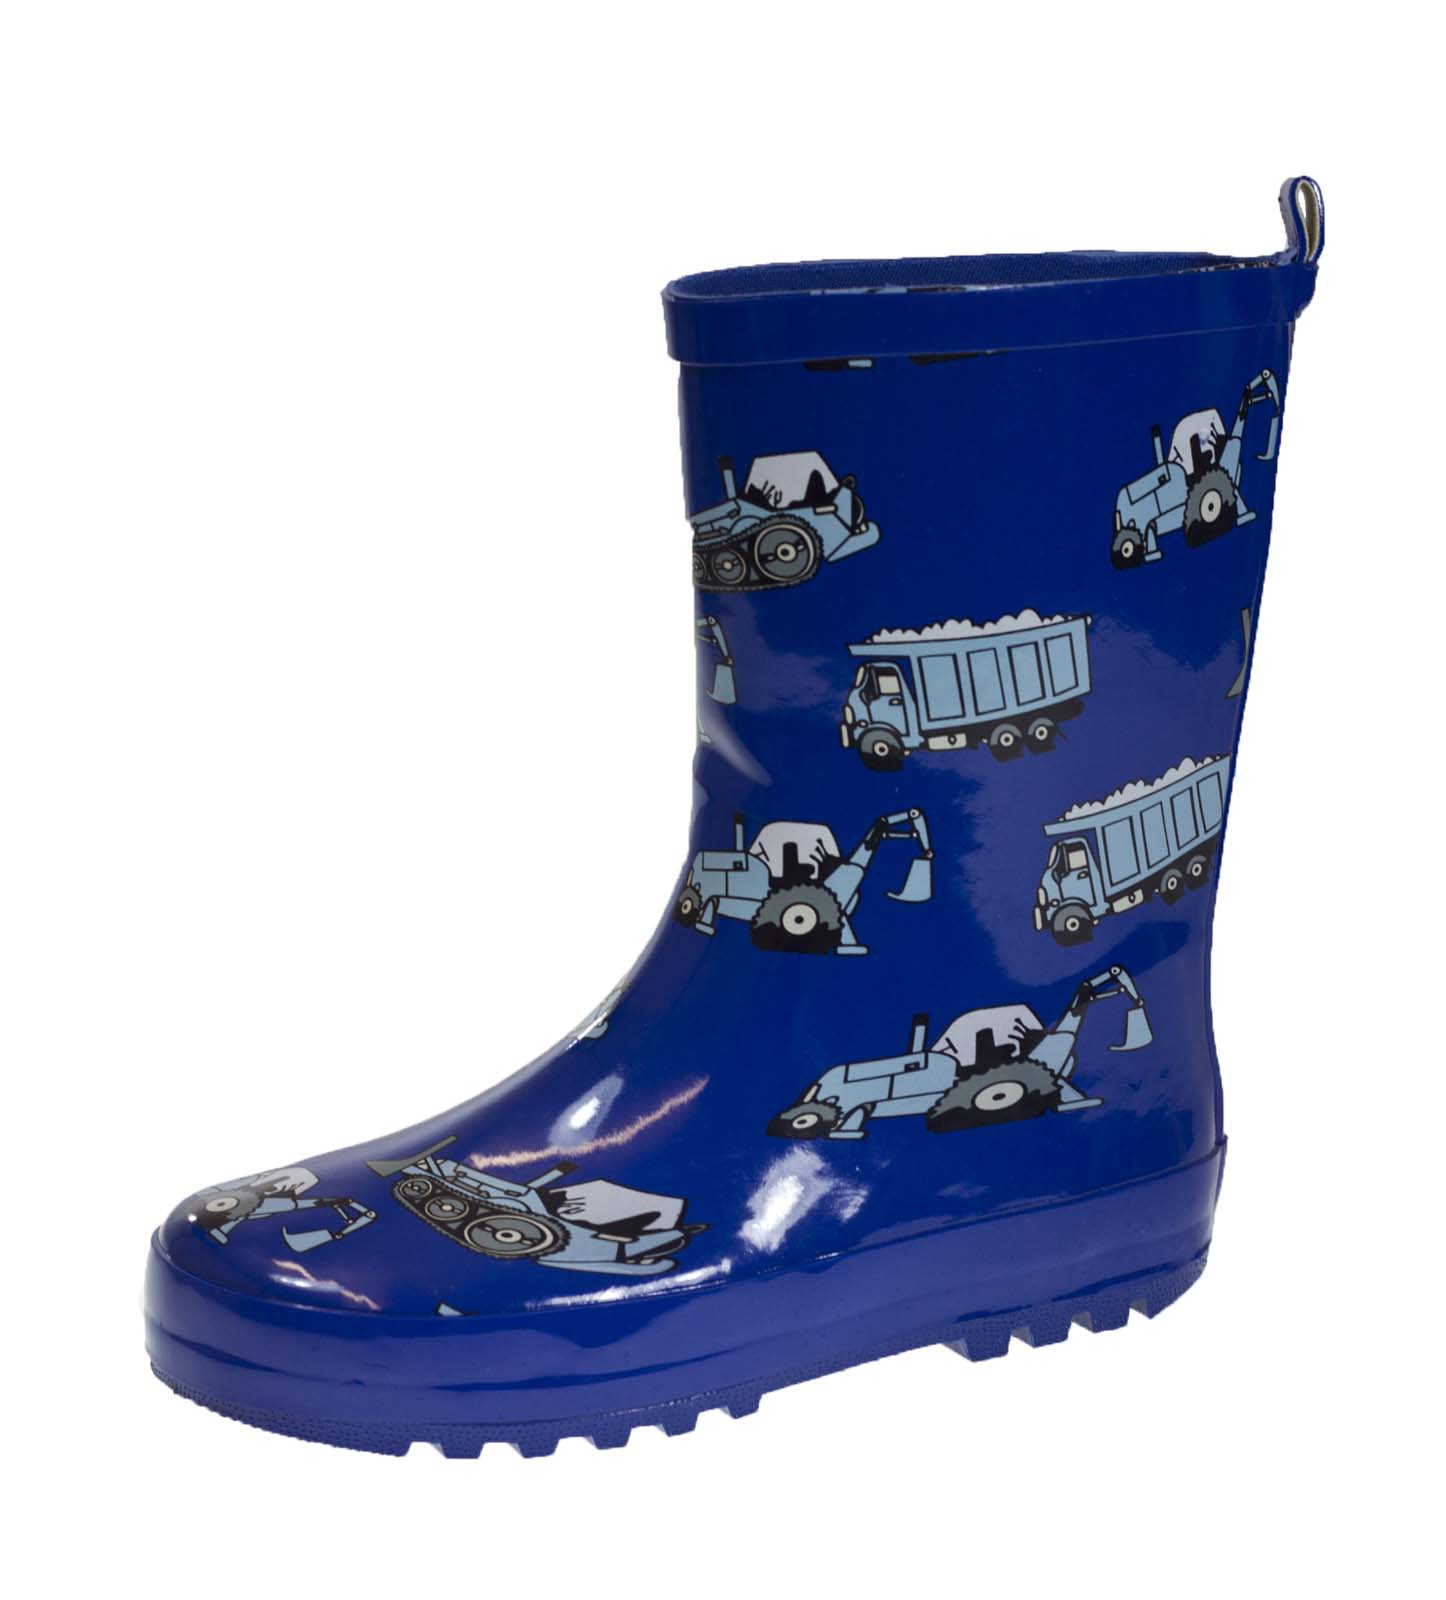 Find Boys Rain Boots online or in store. Shop Top Brands and the latest styles of Rain Boots at Famous Footwear.